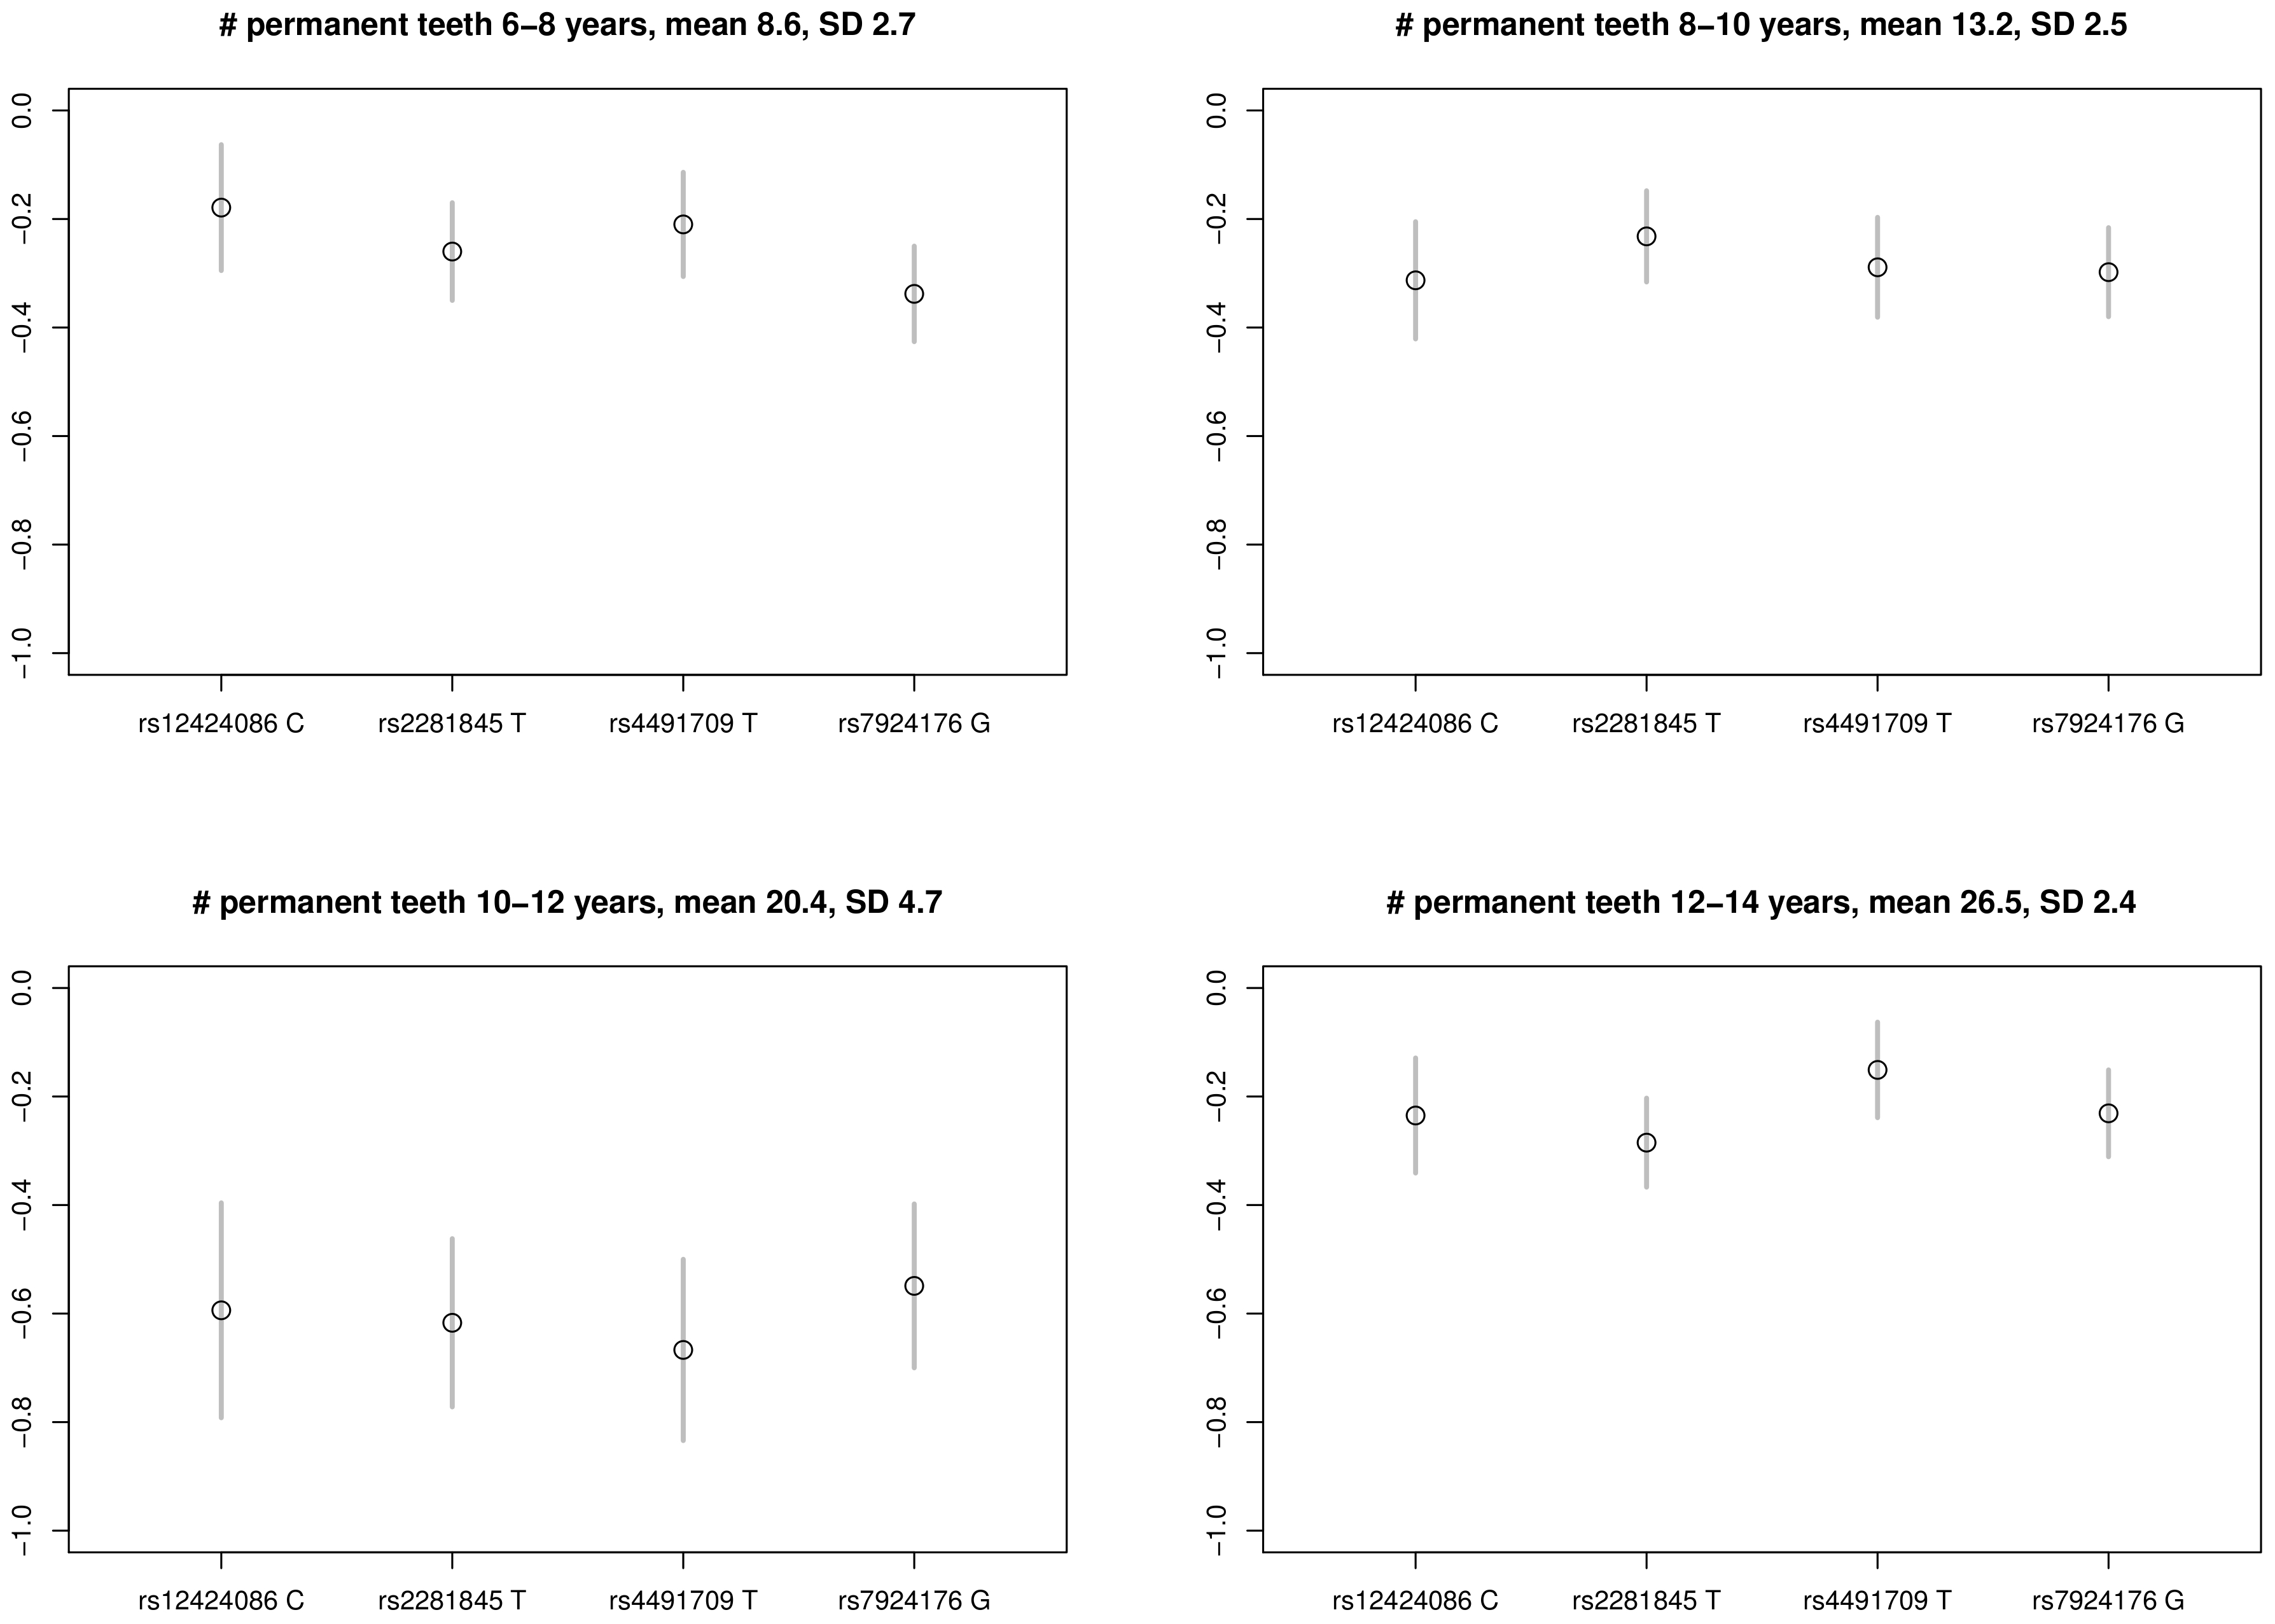 Per allele effect of the four variants on number of permanent teeth erupted based on data for women from the DNBC I & II study groups at age 6–8 years (N=5,865), 8–10 years (N=6,548), 10–12 years (N=6,919), and 12–14 years (N=7,059).